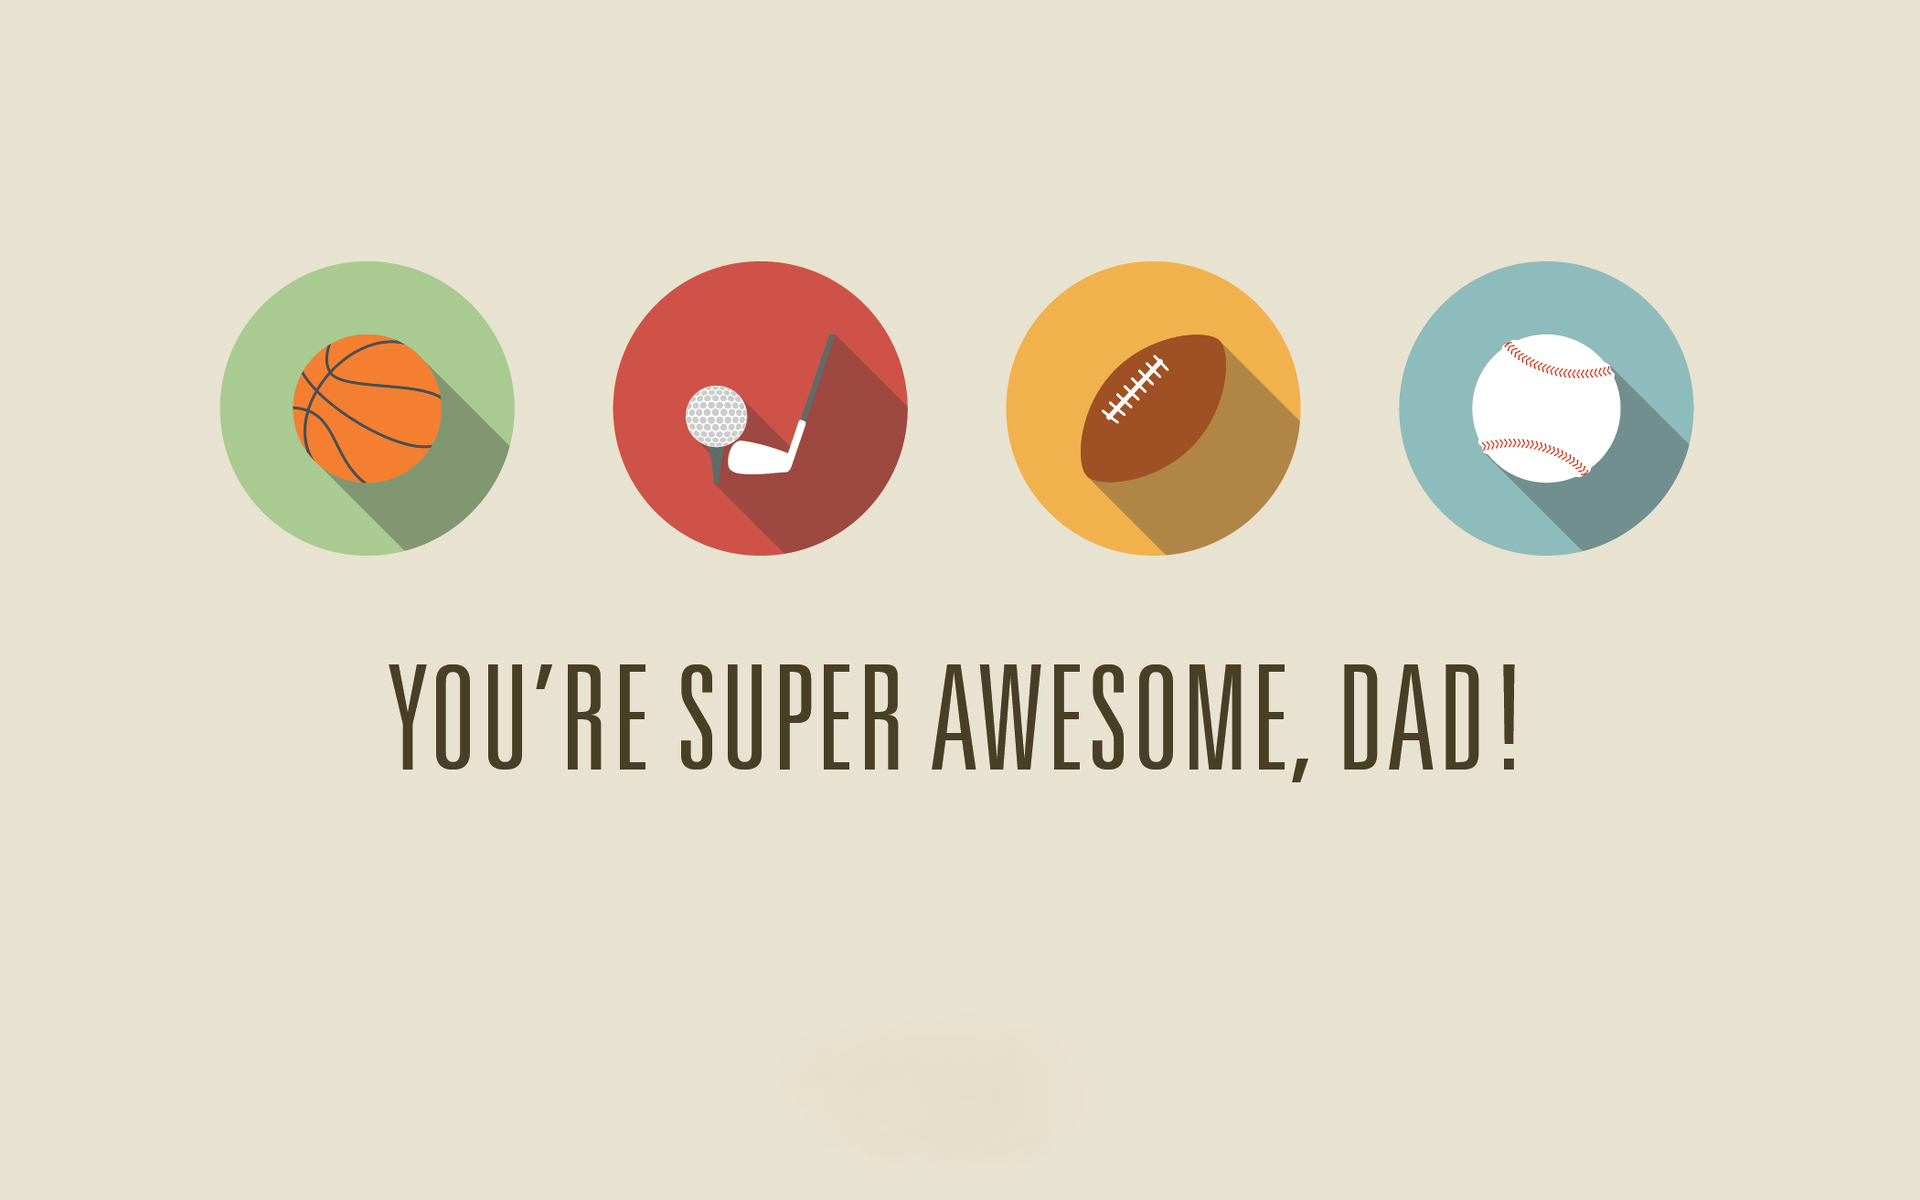 Father S Day Hd Wallpaper Background Image 1920x1200 Id